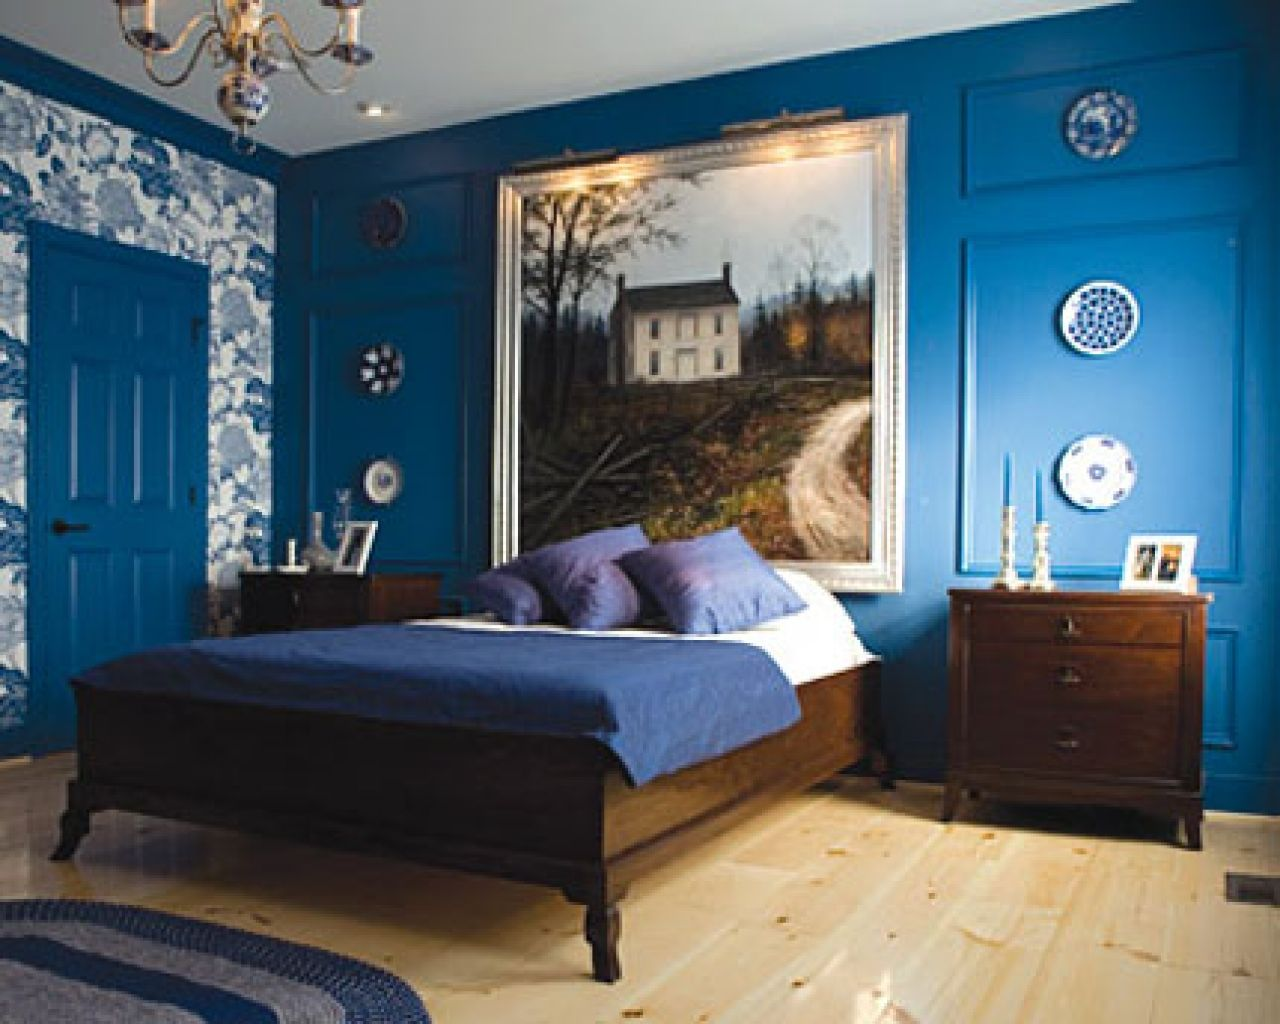 Bedroom designs for couples in blue - Bedroom Painting Design Ideas Pretty Natural Bedroom Paint Ideas Cute Blue Wall Idp Interior Design